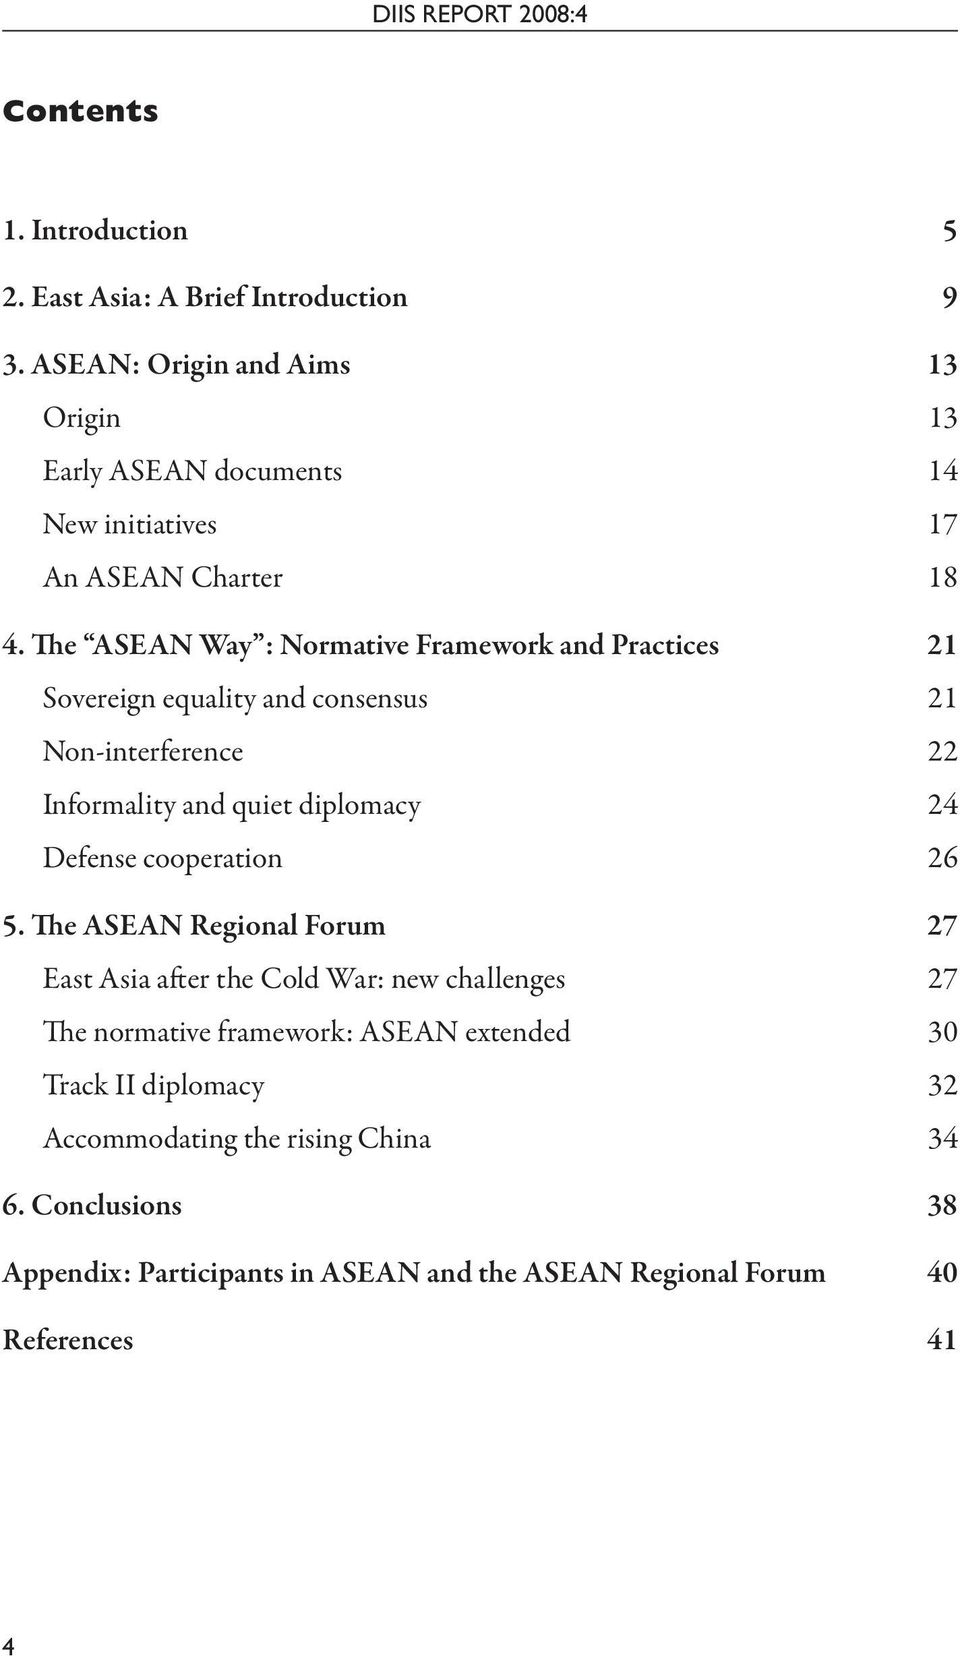 The ASEAN Way : Normative Framework and Practices 21 Sovereign equality and consensus 21 Non-interference 22 Informality and quiet diplomacy Defense